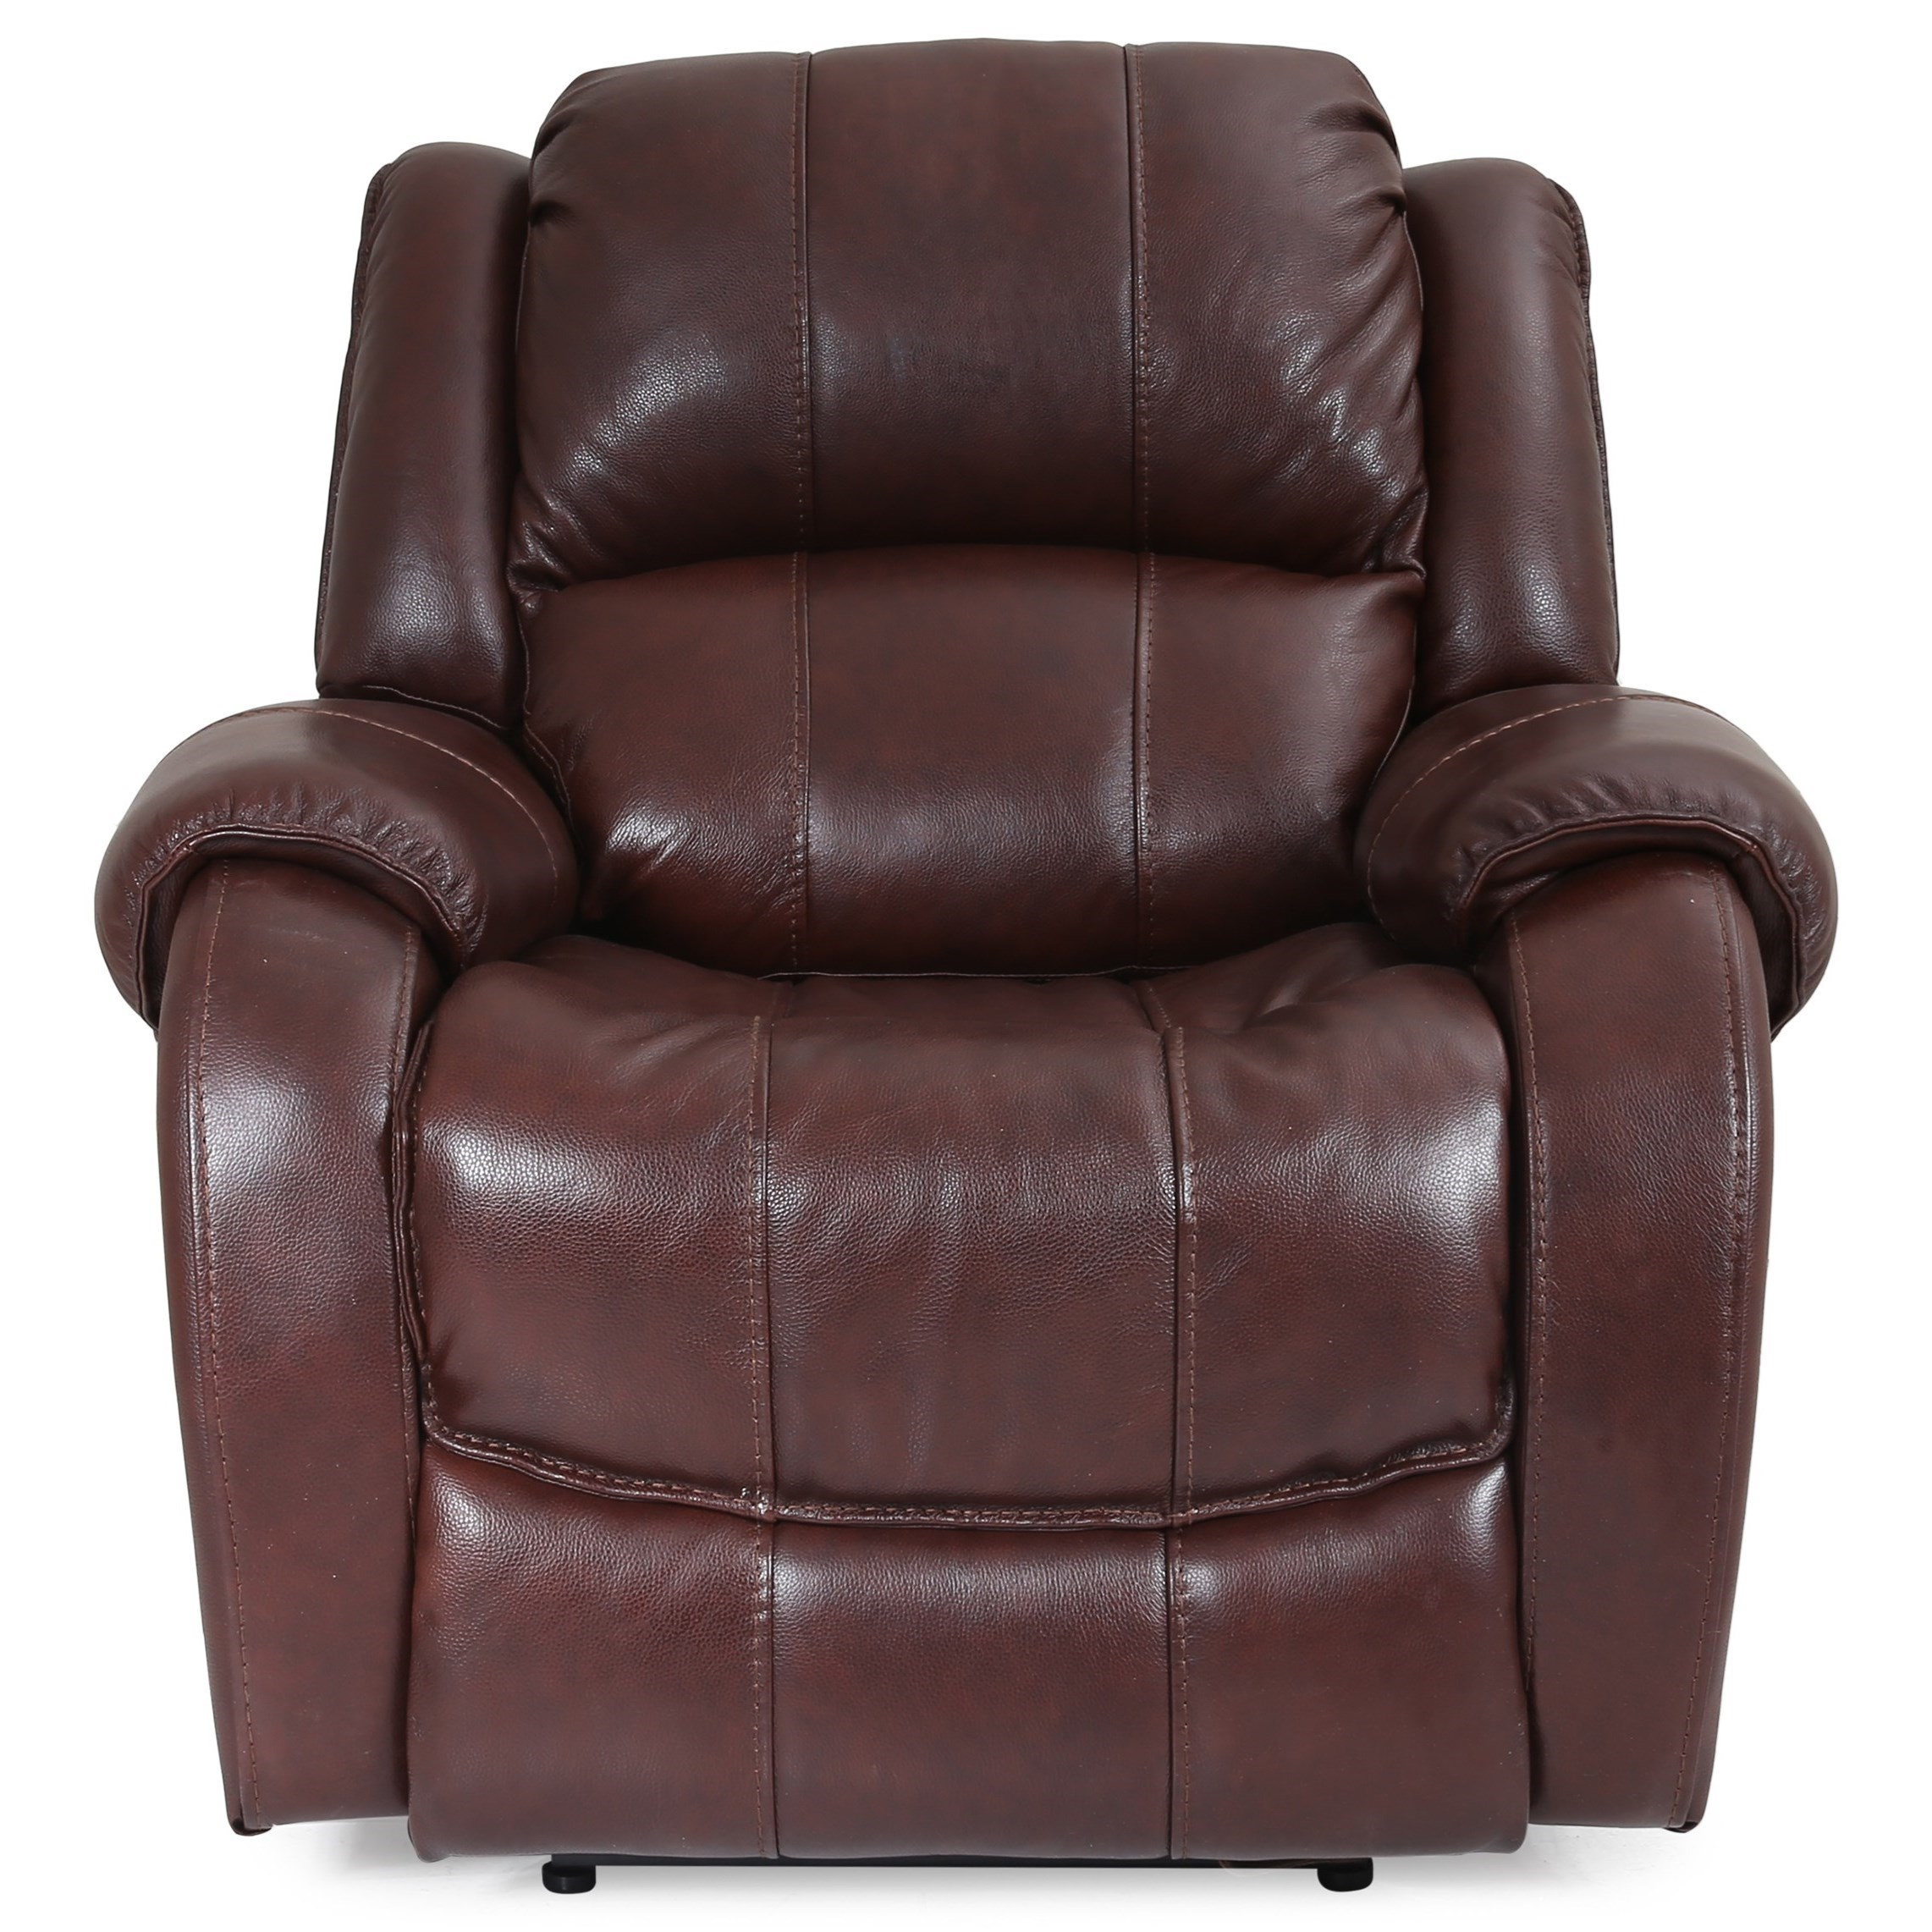 5171 Power Recliner with Power Headrest at Pilgrim Furniture City